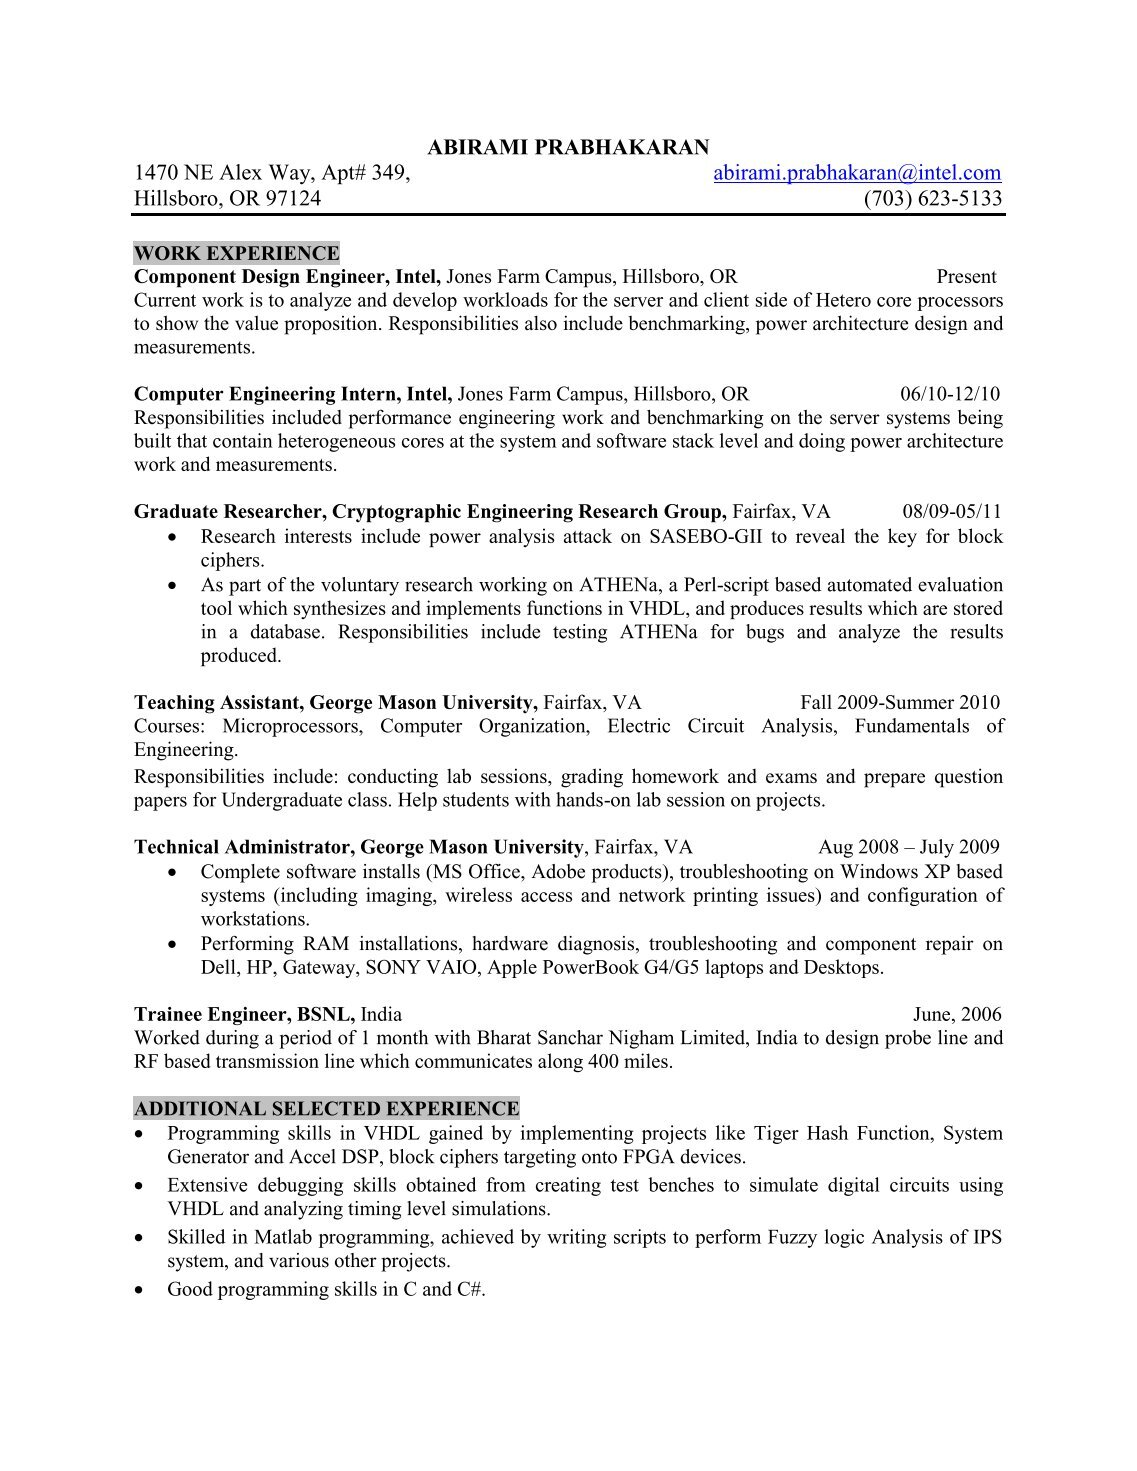 sample resume for engineering internship component engineer sample resumeml intel component design engineer sample resume plantation home - Apple Hardware Engineer Sample Resume